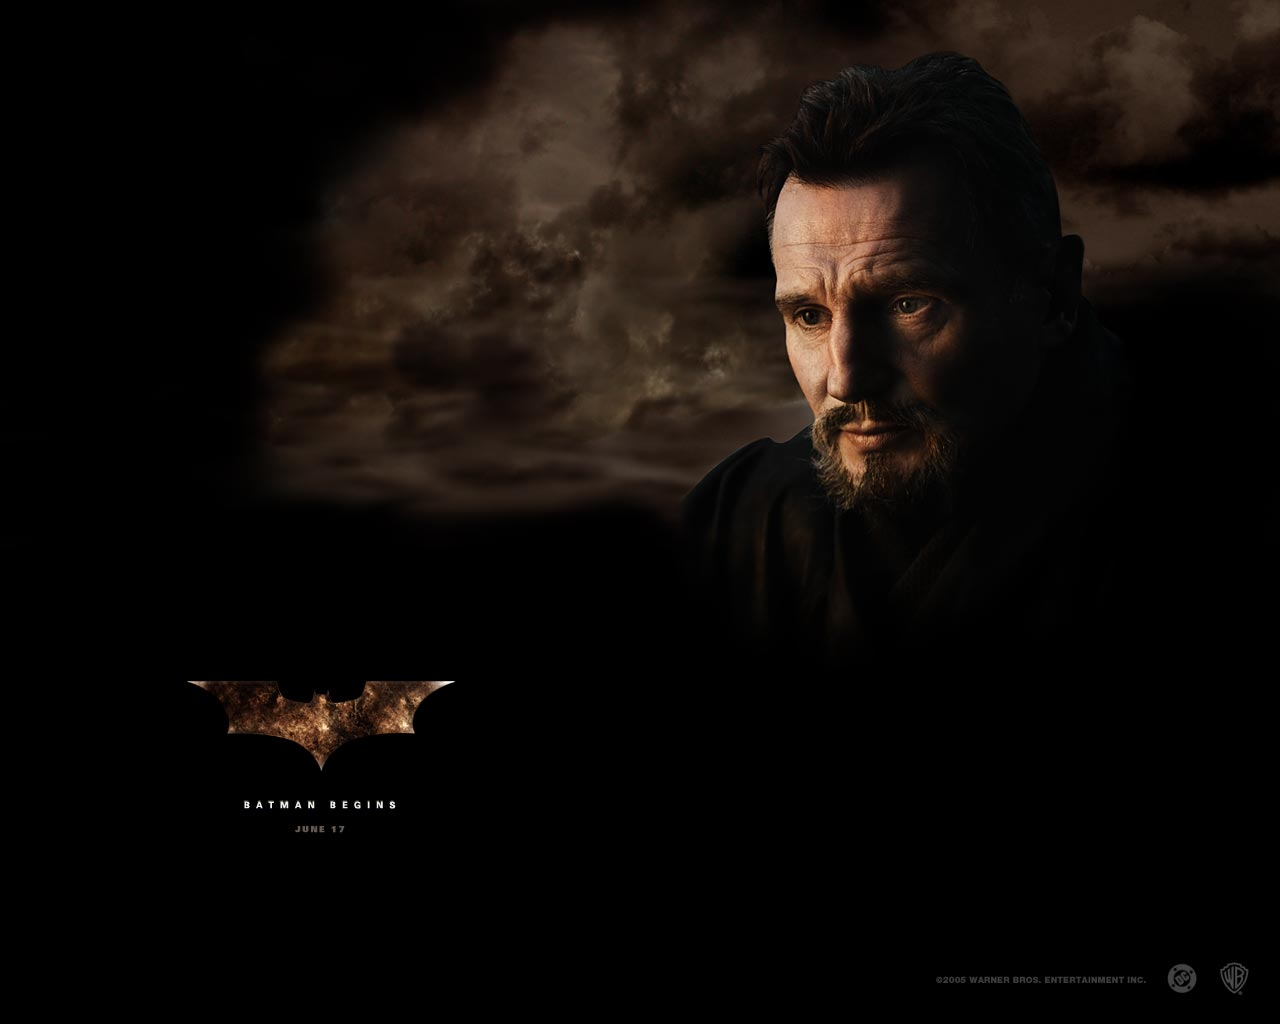 Batman_Begins_11_1280x1024.jpg